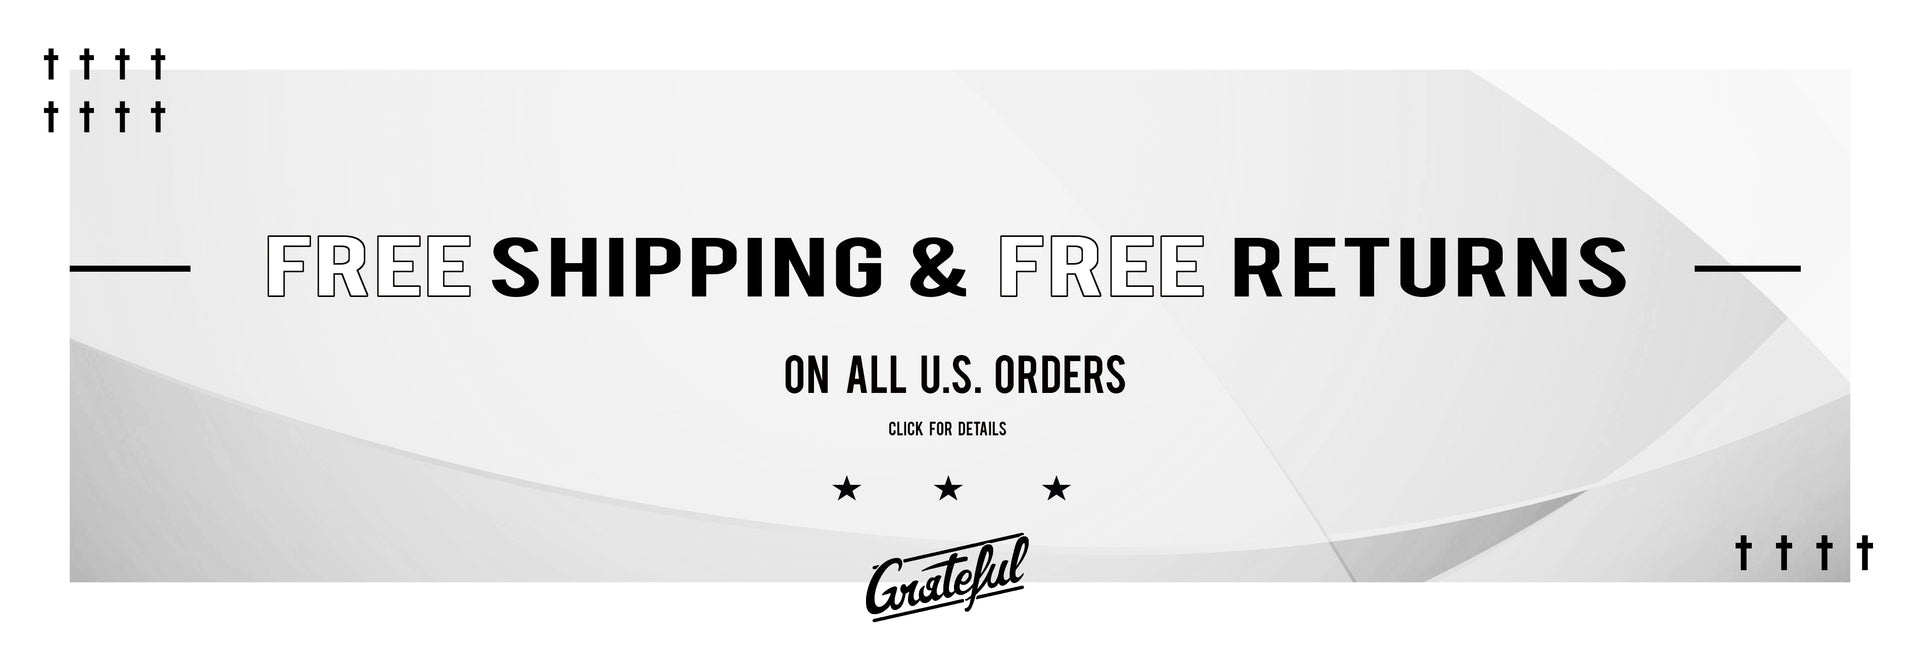 Free Shipping 18